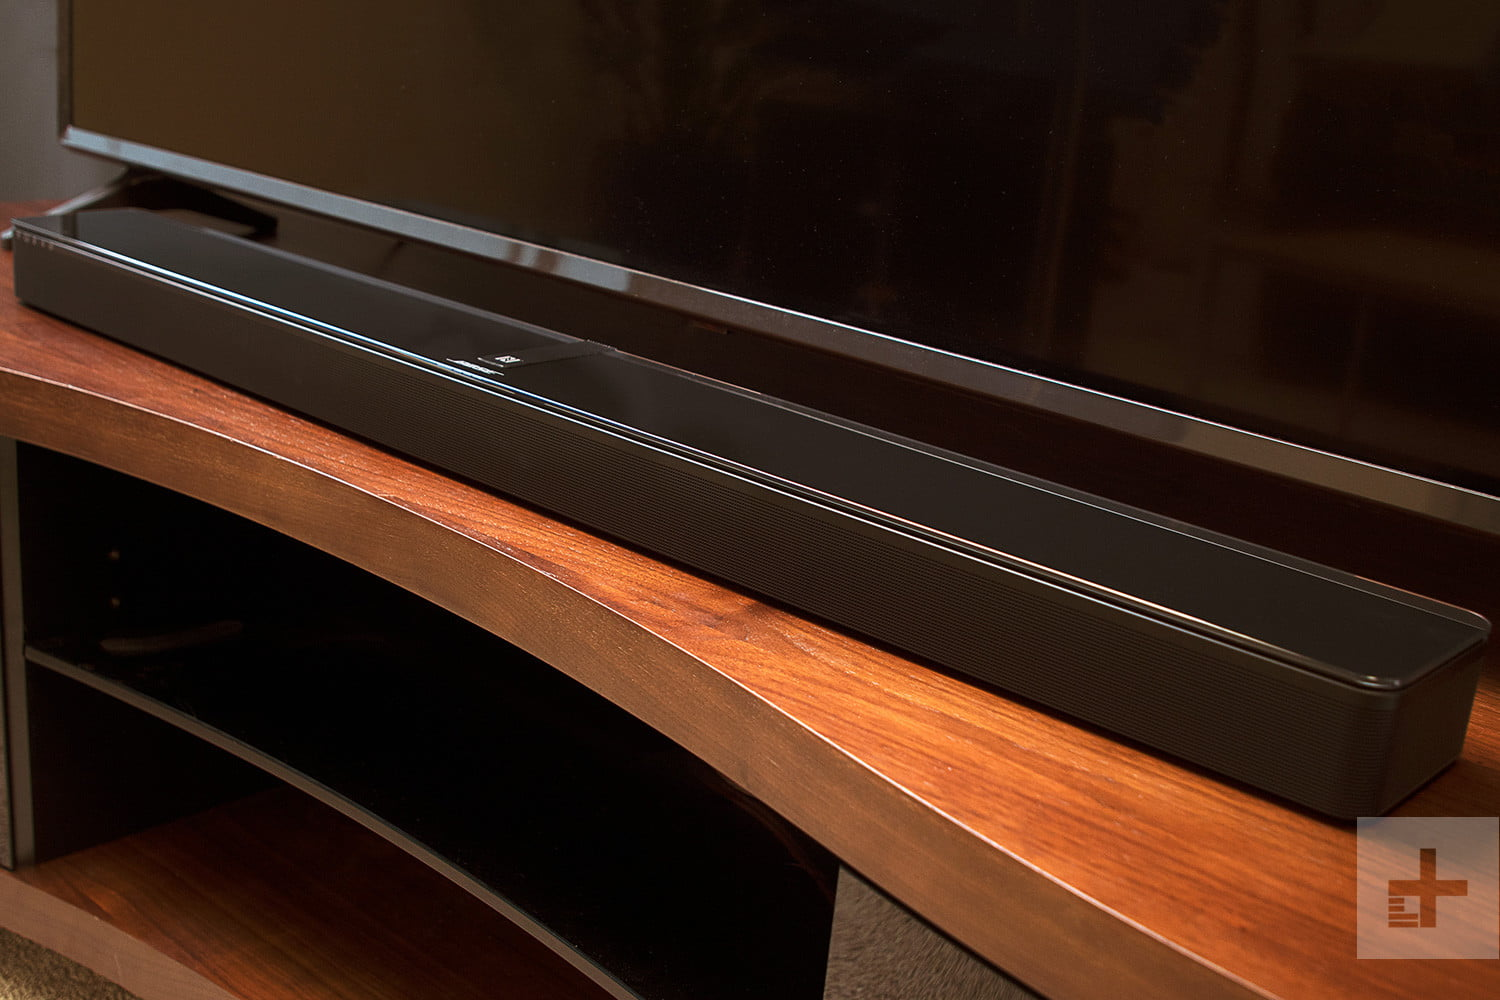 Bose SoundTouch 300 and Acoustimass 300 bass module review